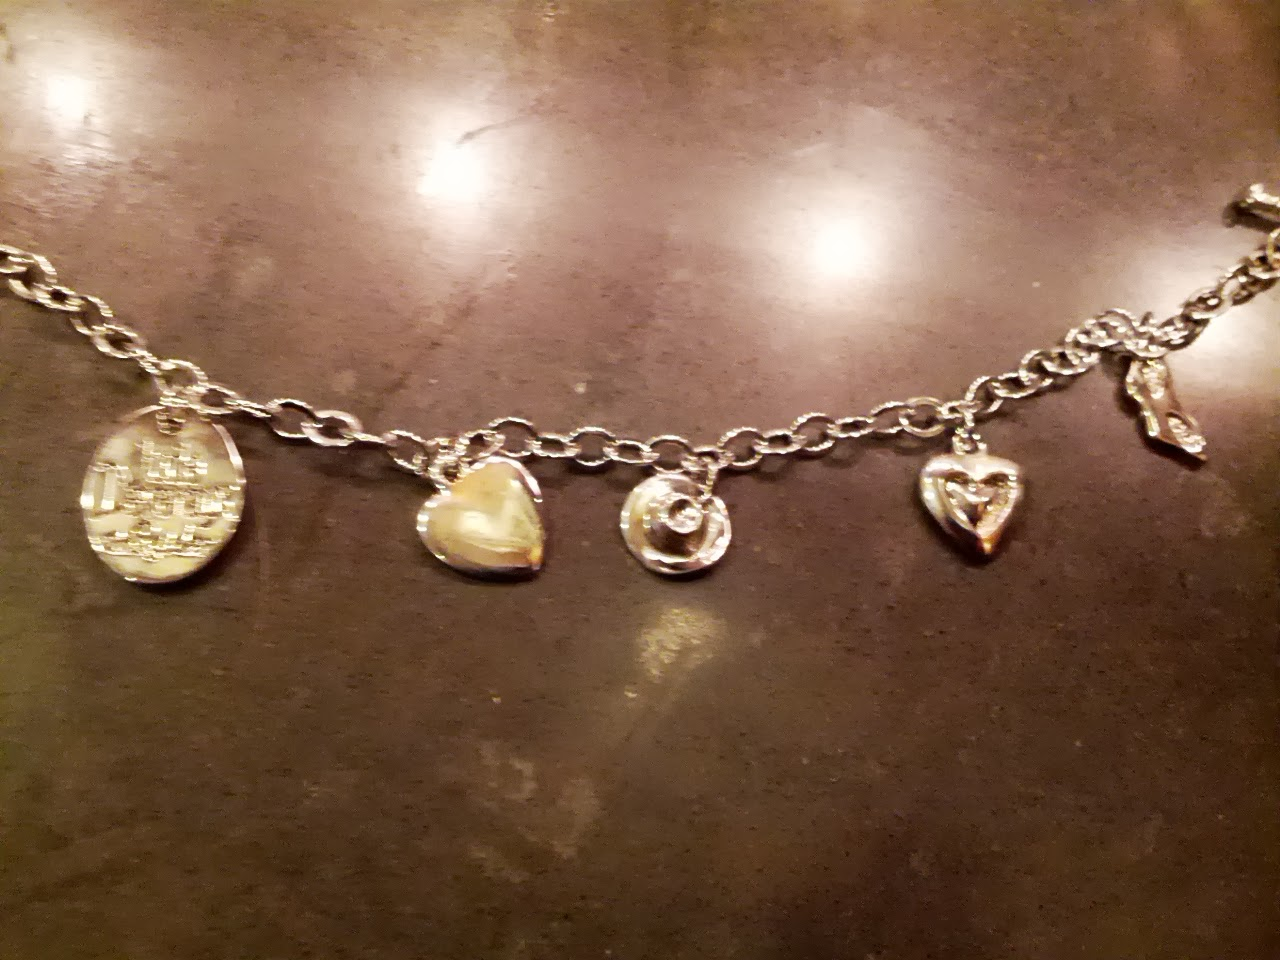 A blurry pic of the charm bracelet